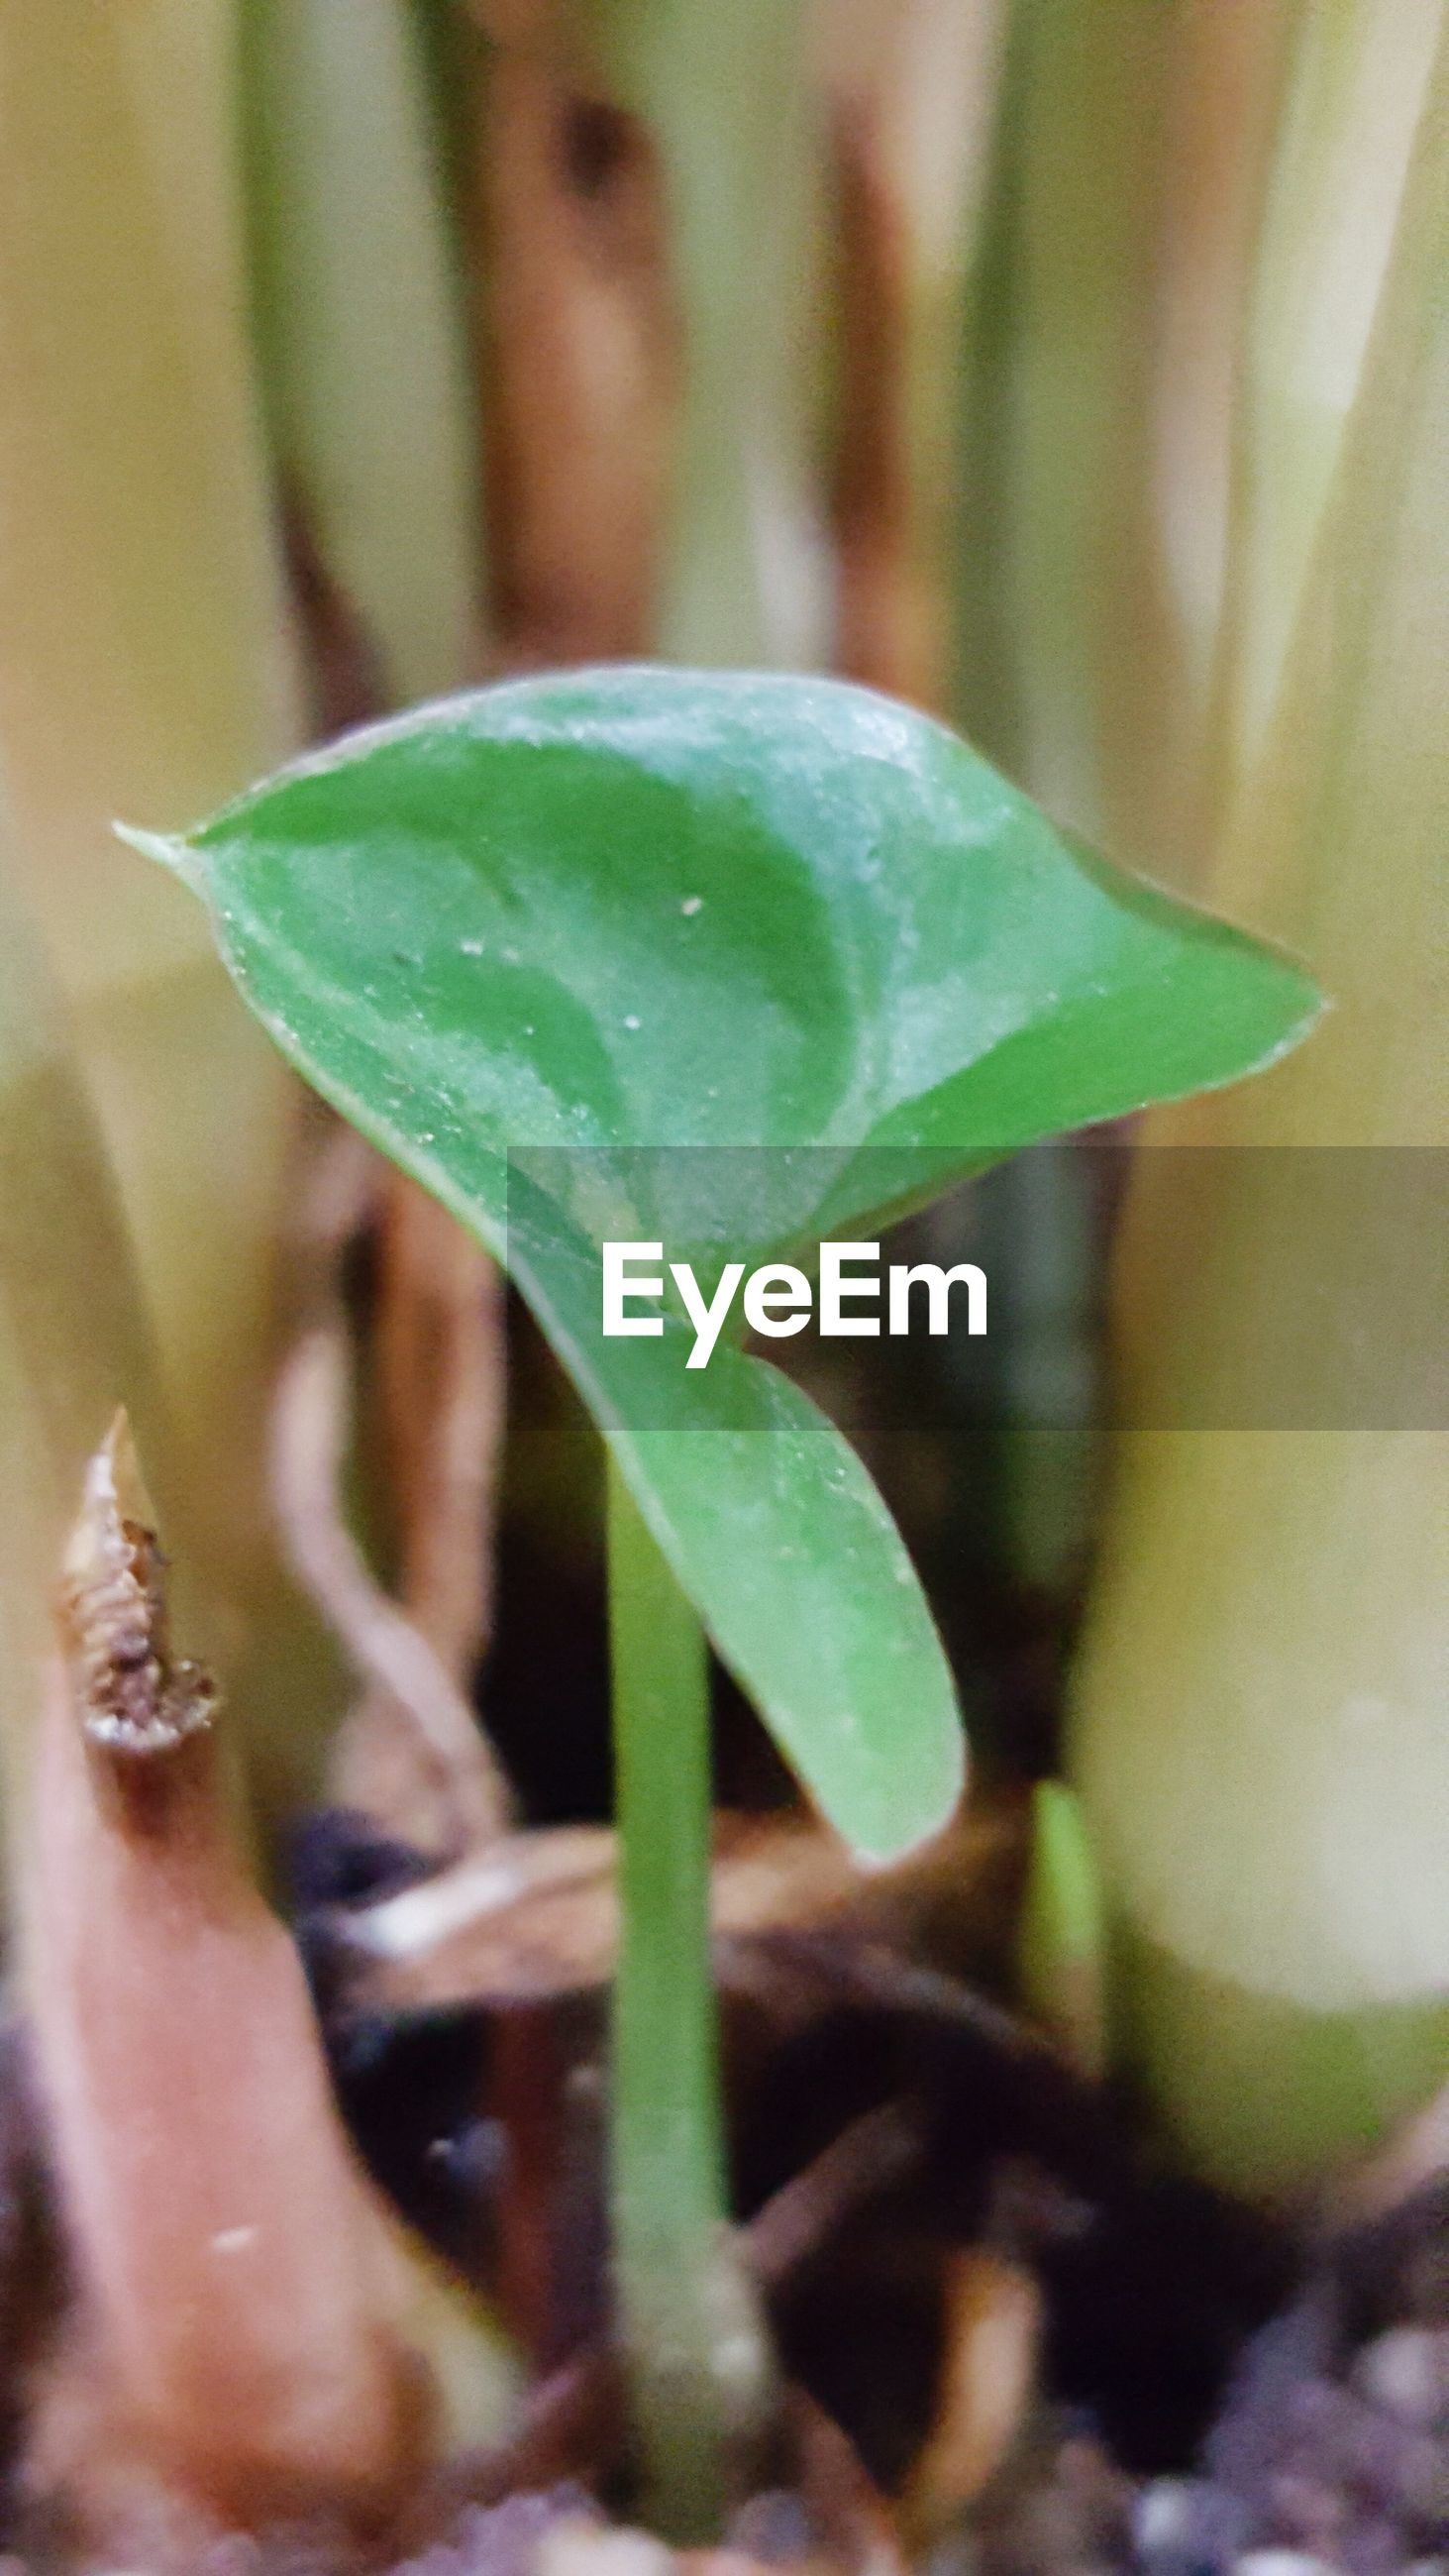 leaf, growth, green color, plant, close-up, focus on foreground, nature, selective focus, beginnings, stem, new life, bud, beauty in nature, freshness, growing, green, fragility, outdoors, day, no people